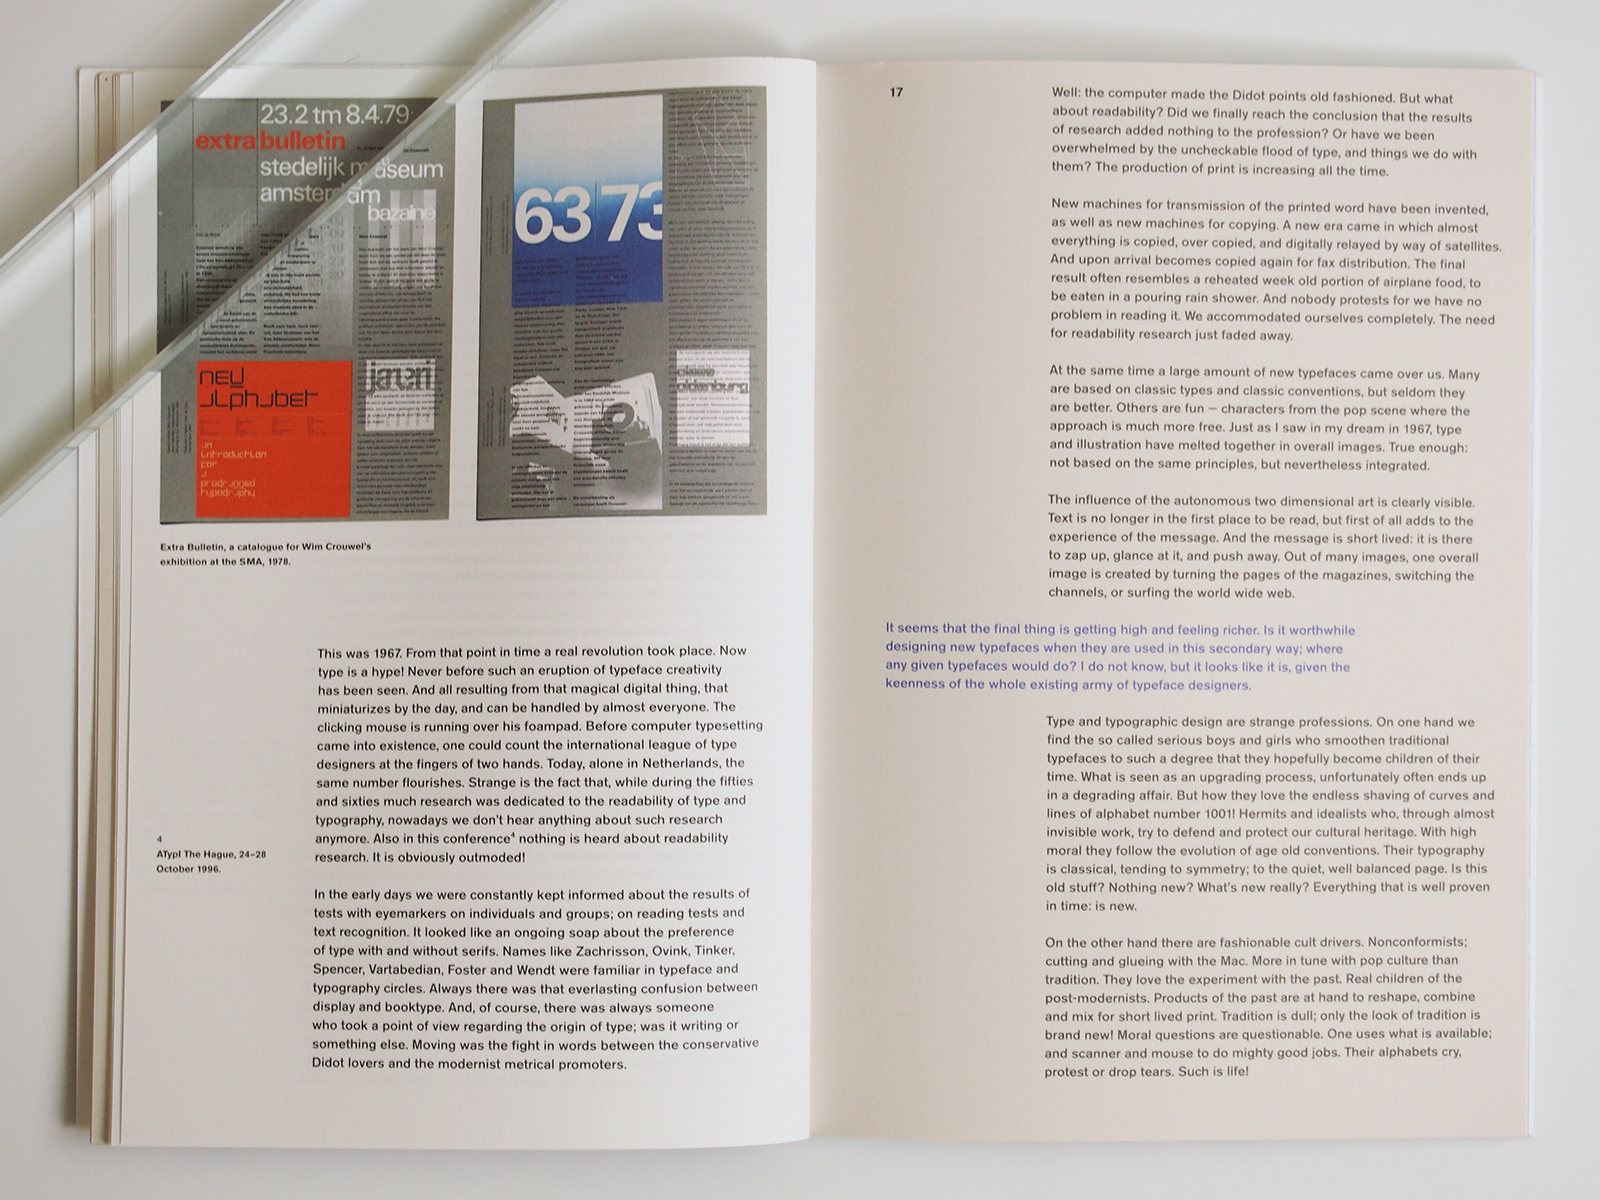 Paperback: 64 pages + extra folded pages. Publisher: De Buitenkant Language: English, Dutch ISBN-10: 9490913200. ISBN-13: 978-9490913205